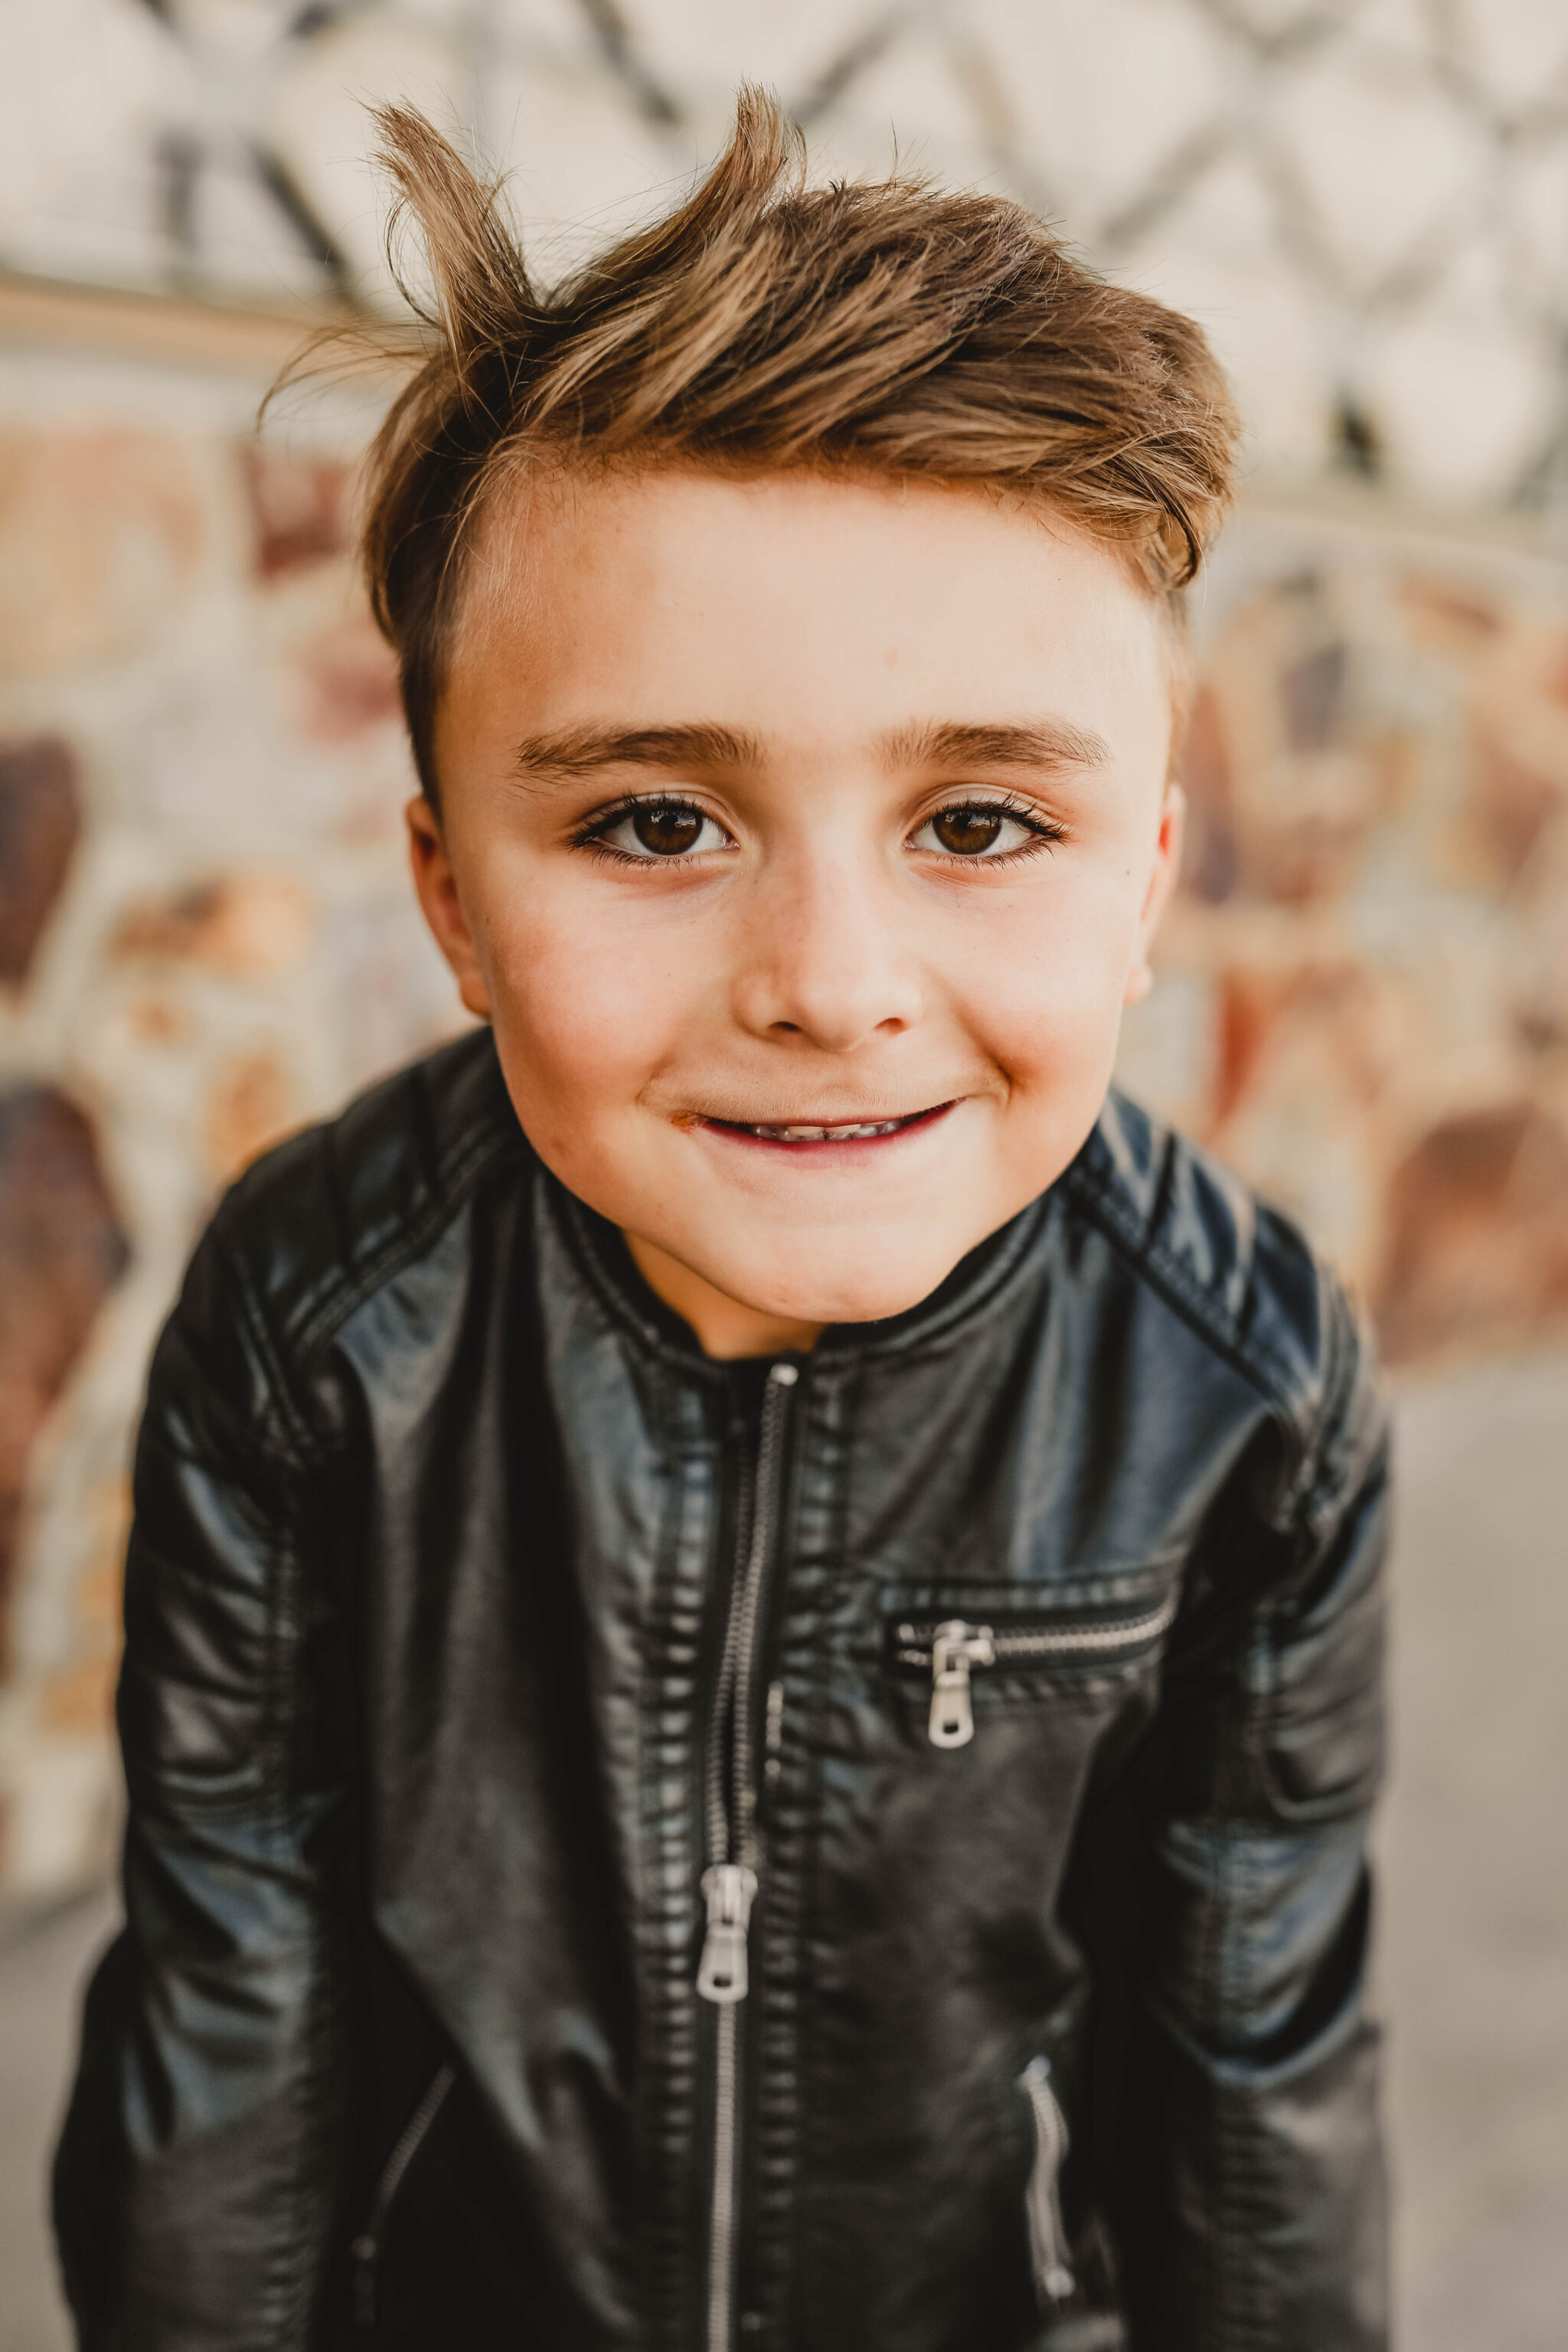 boy smiling at camera